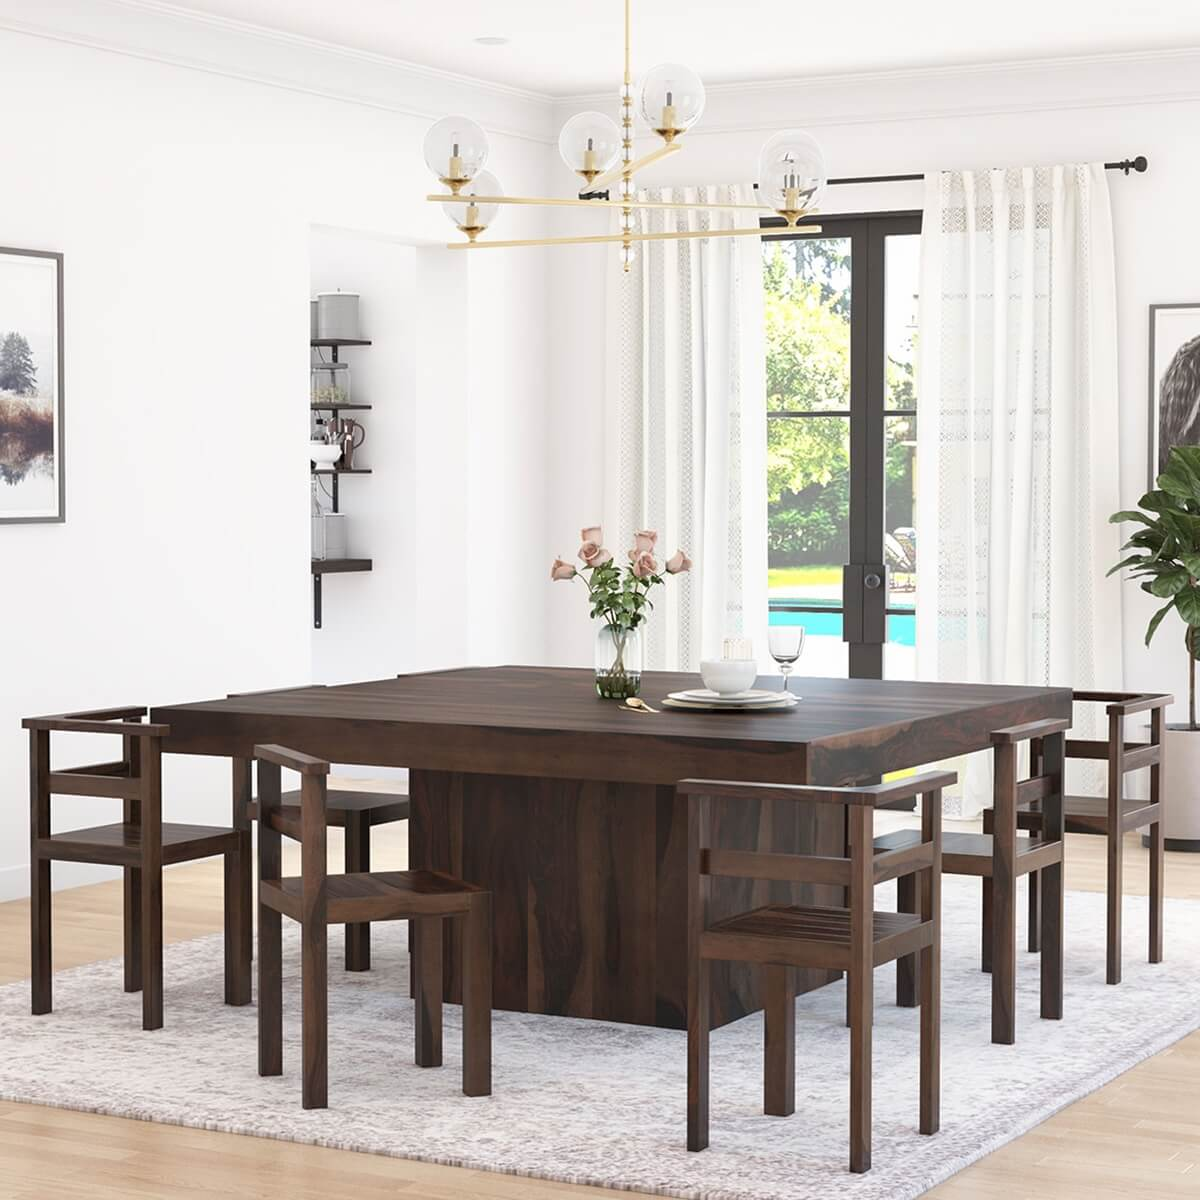 modern rustic solid wood 64 square pedestal dining table On square dining table for 8